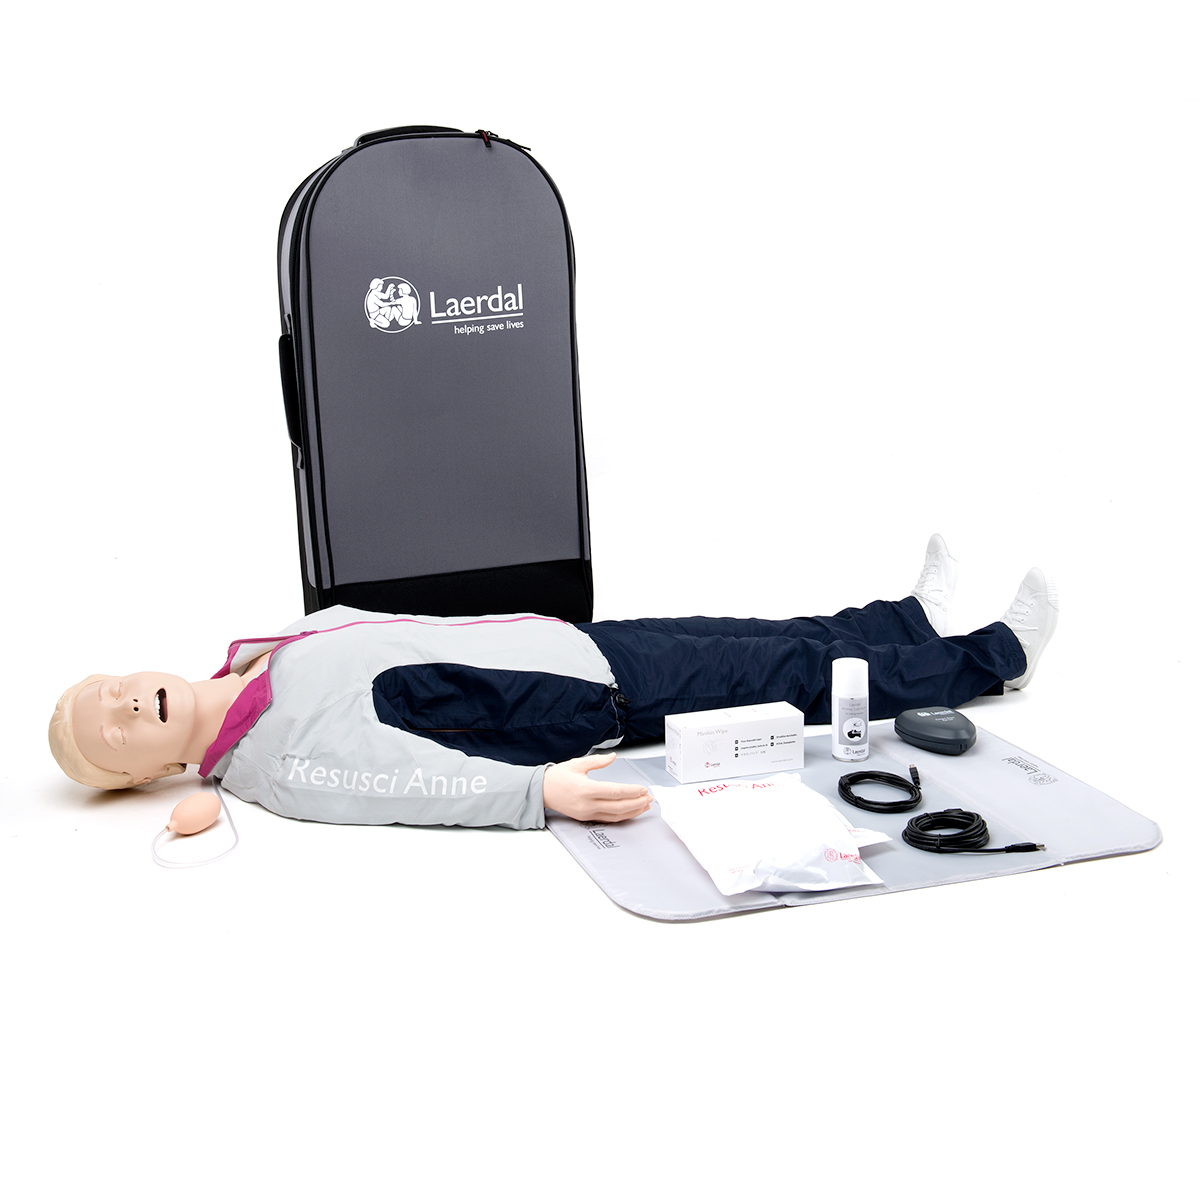 Laerdal Resusci® Anne QCPR Airway Head Full Body with Trolley Case